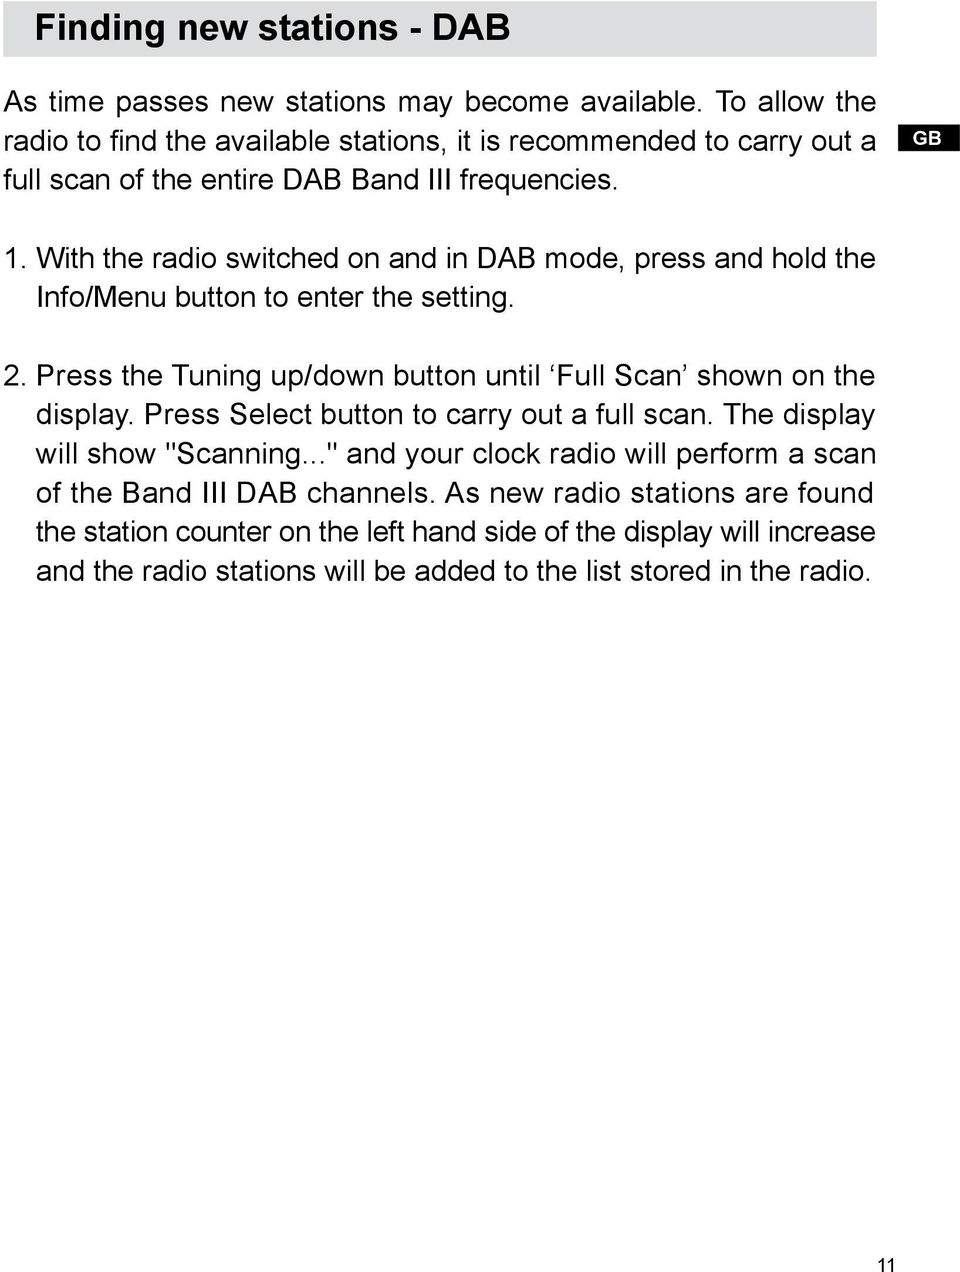 With the radio switched on and in DAB mode, press and hold the Info/Menu button to enter the setting. 2. Press the Tuning up/down button until Full Scan shown on the display.